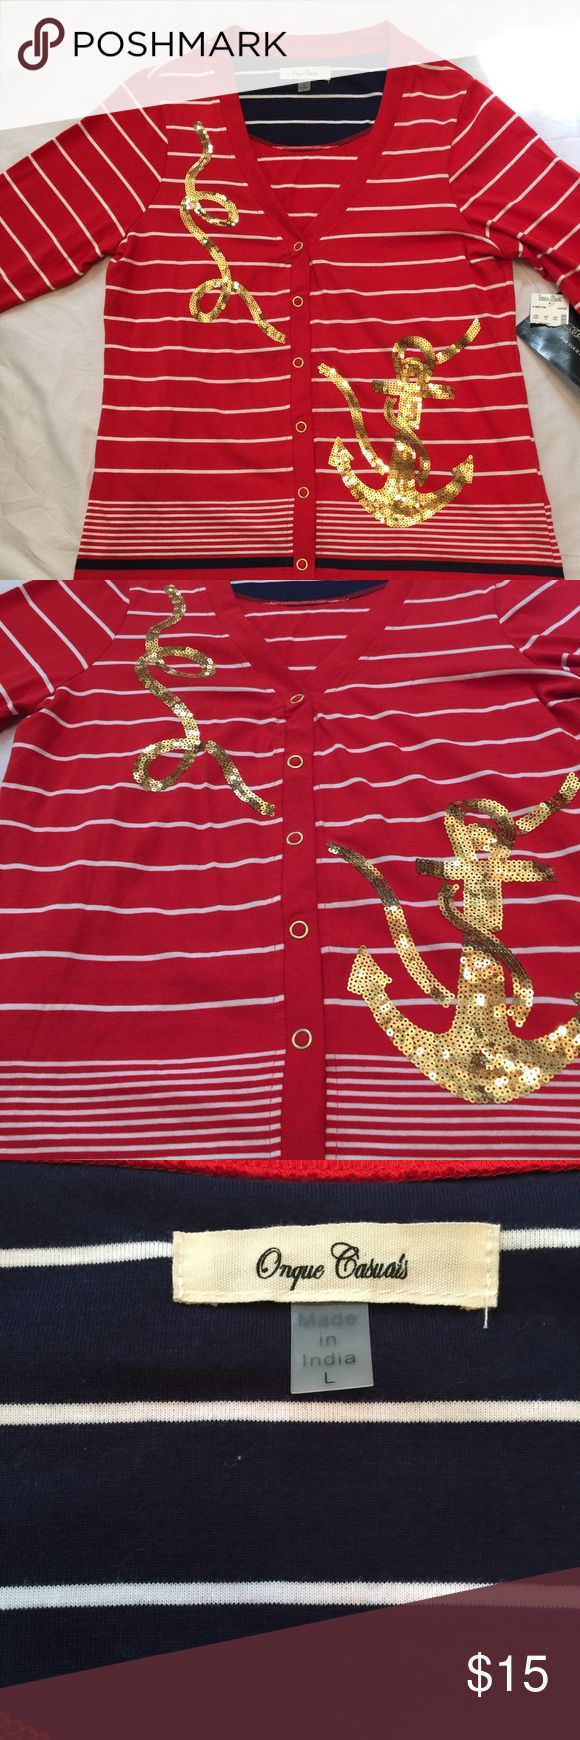 Nautical cardigan with 3/4 sleeves, red & sequins This is a new with tags nautical cardigan. It's red with cream stripes and gold sequin anchors. The sleeves are 3/4 length. Tops